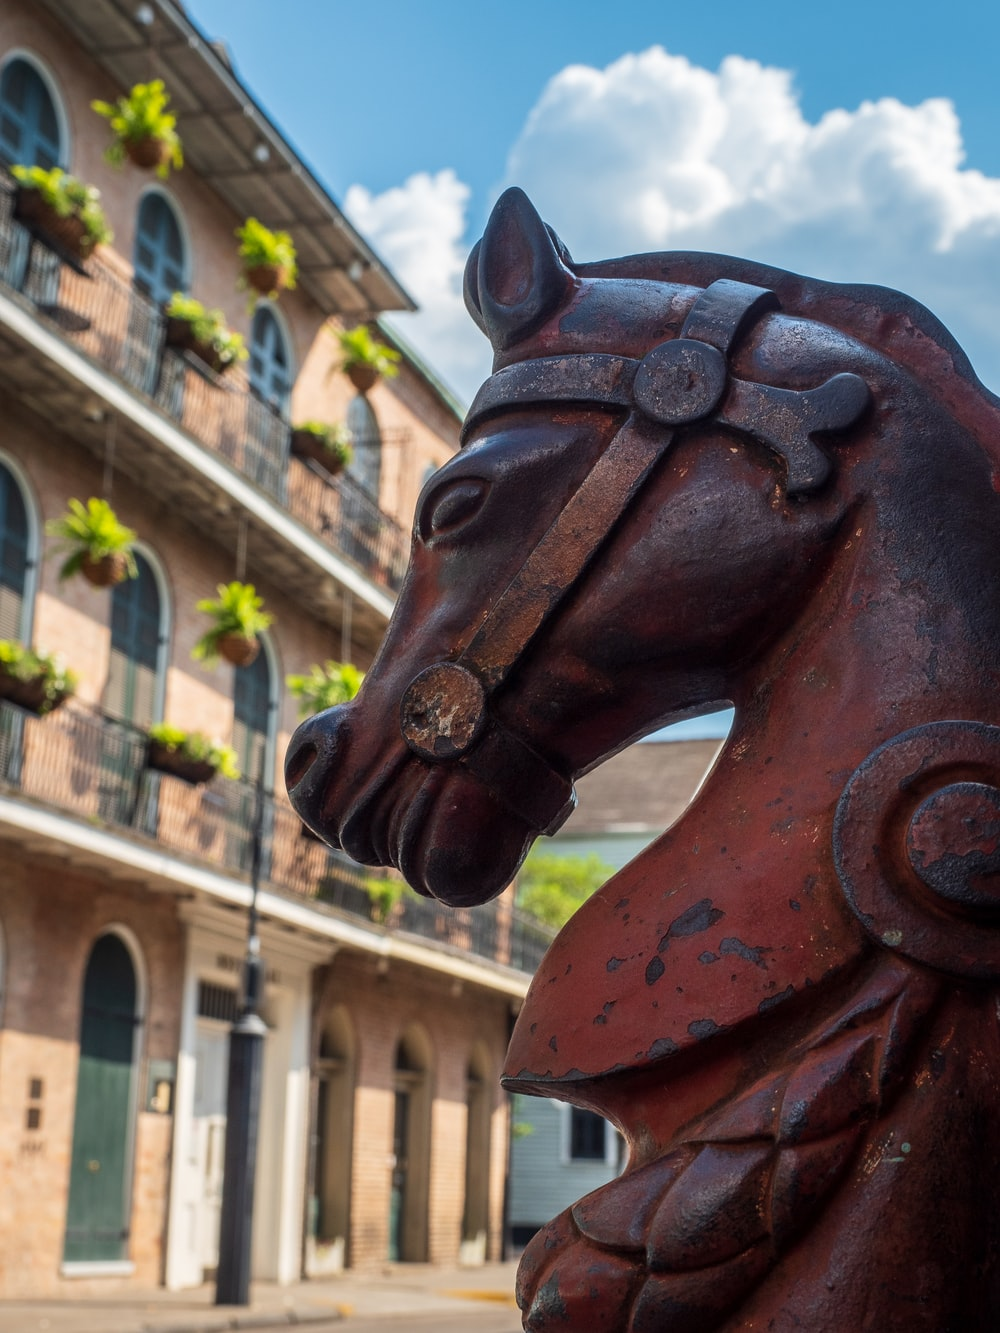 brown wooden horse statue near brown concrete building during daytime